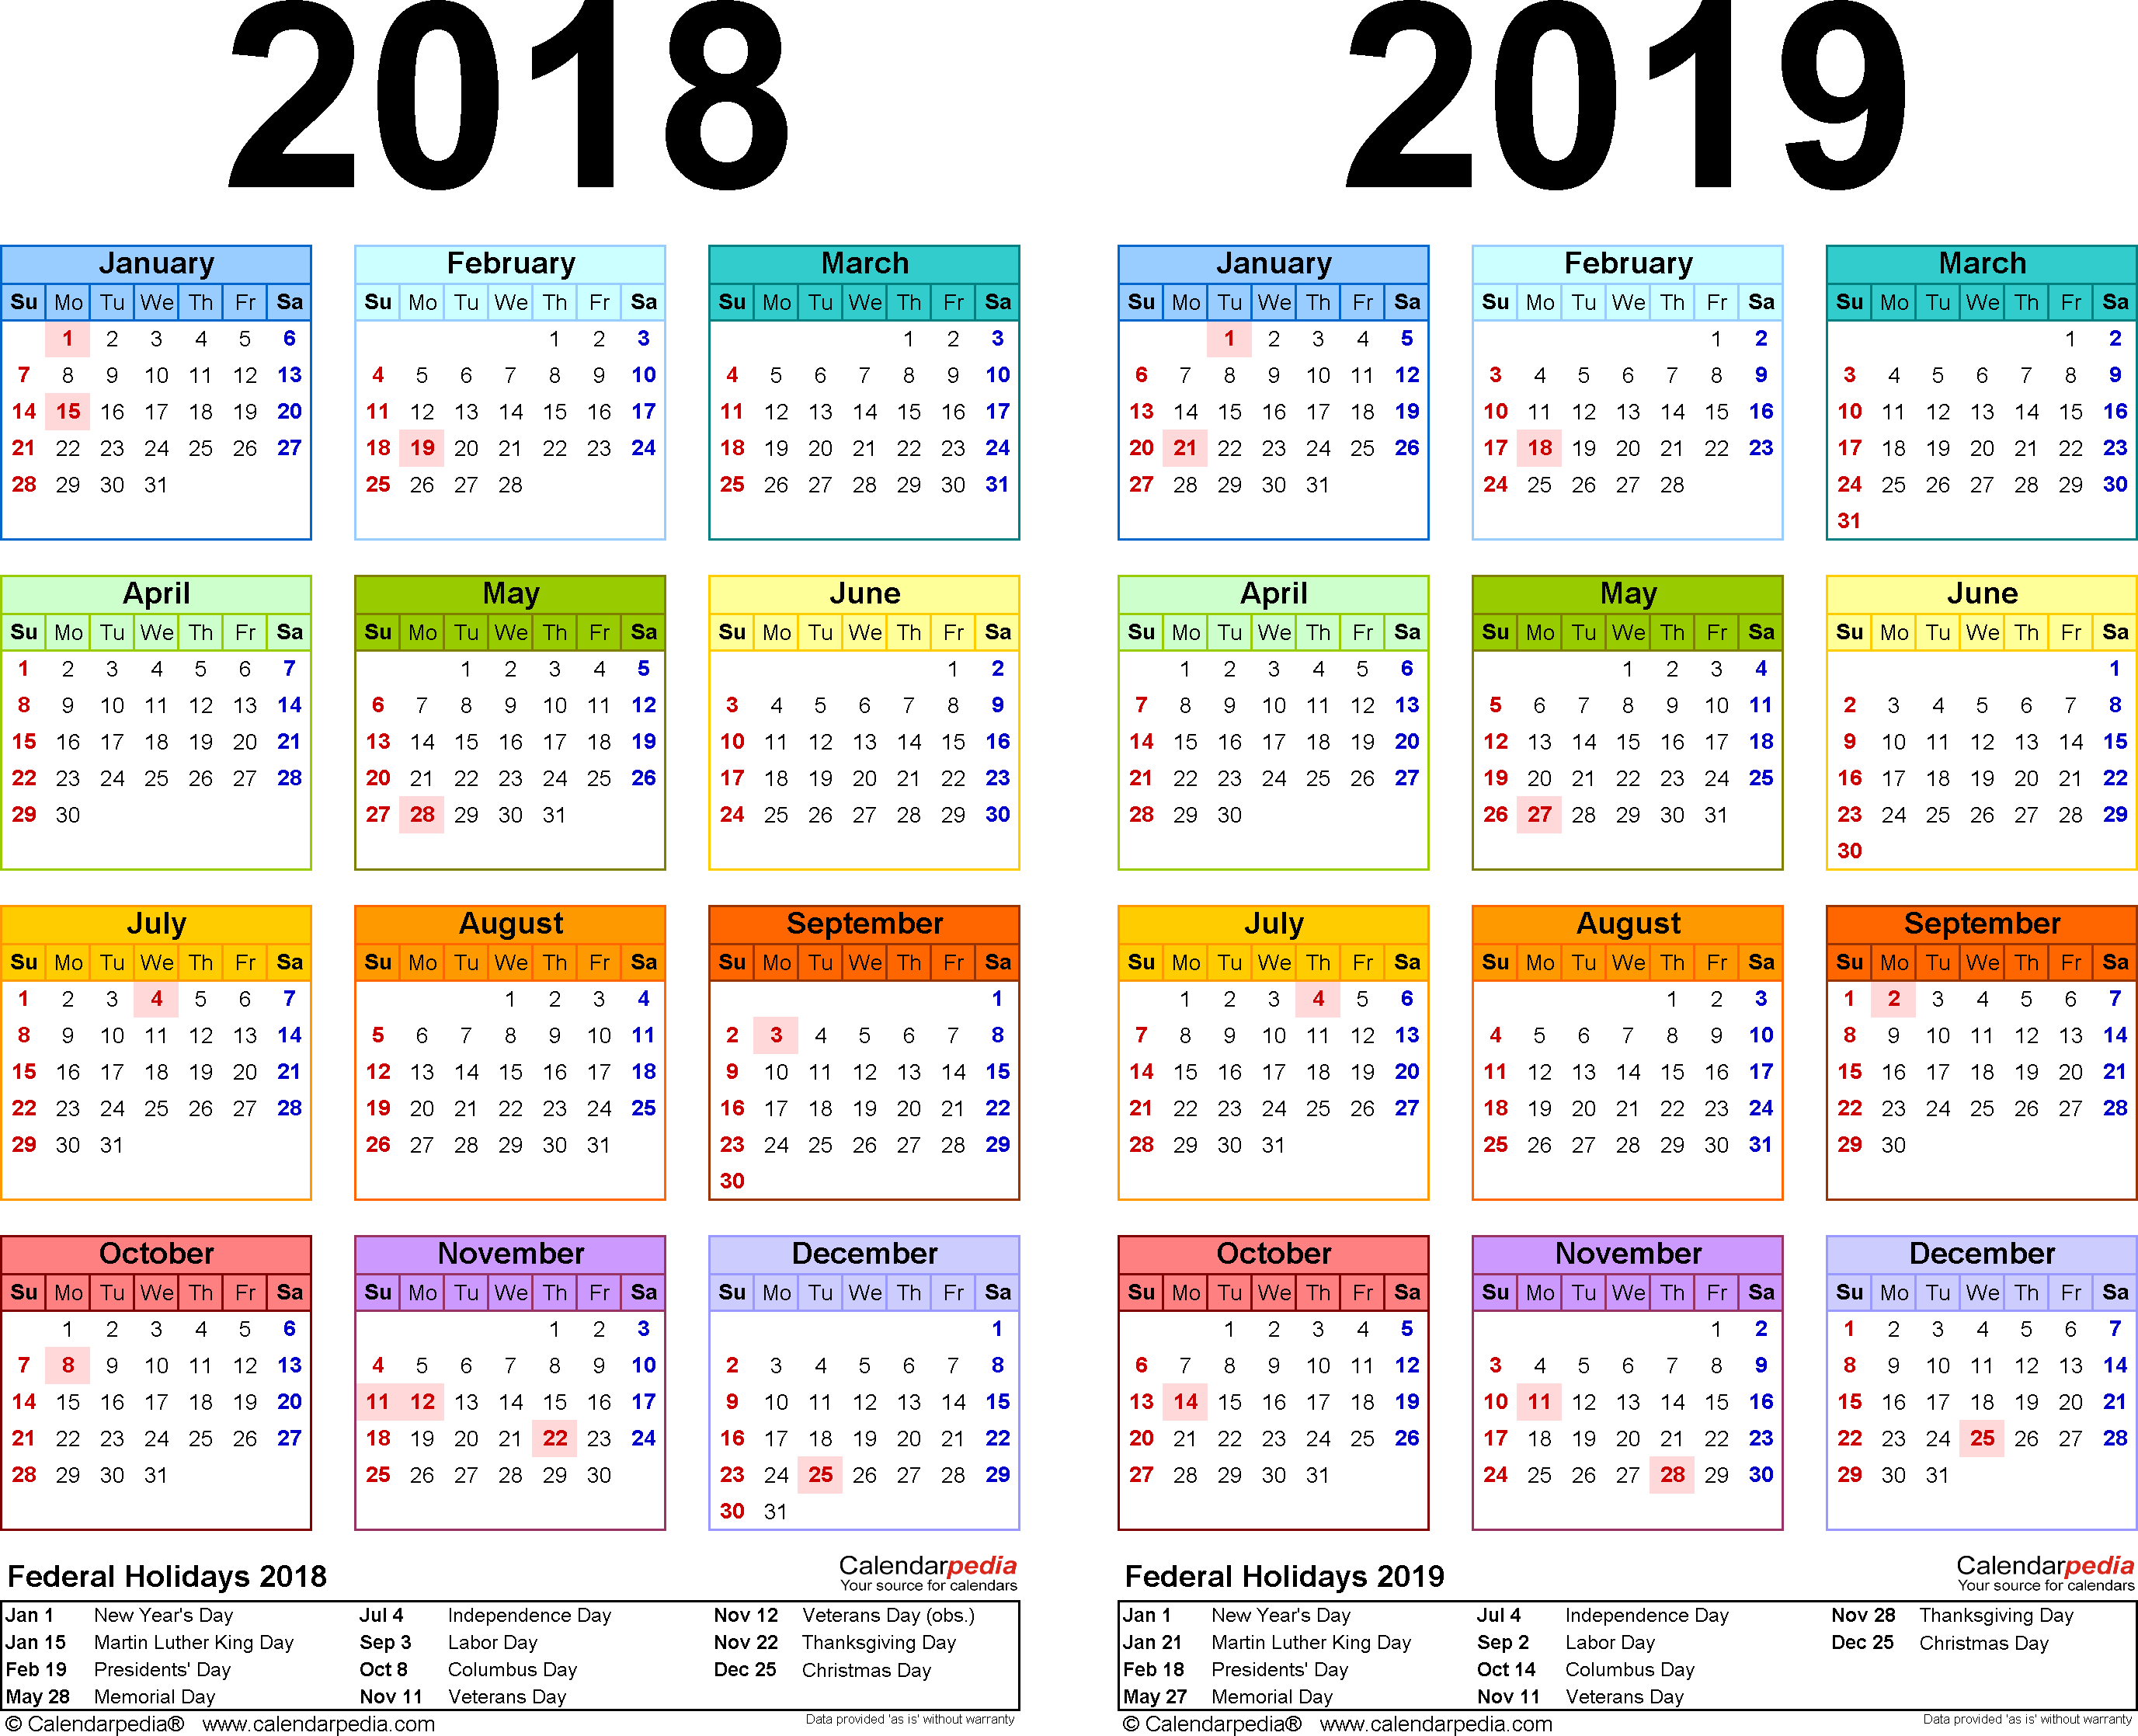 Printable 2019-2016 Calendar Calendar 2018/ Calendar 2019 | Schedule calendar template | Yearly